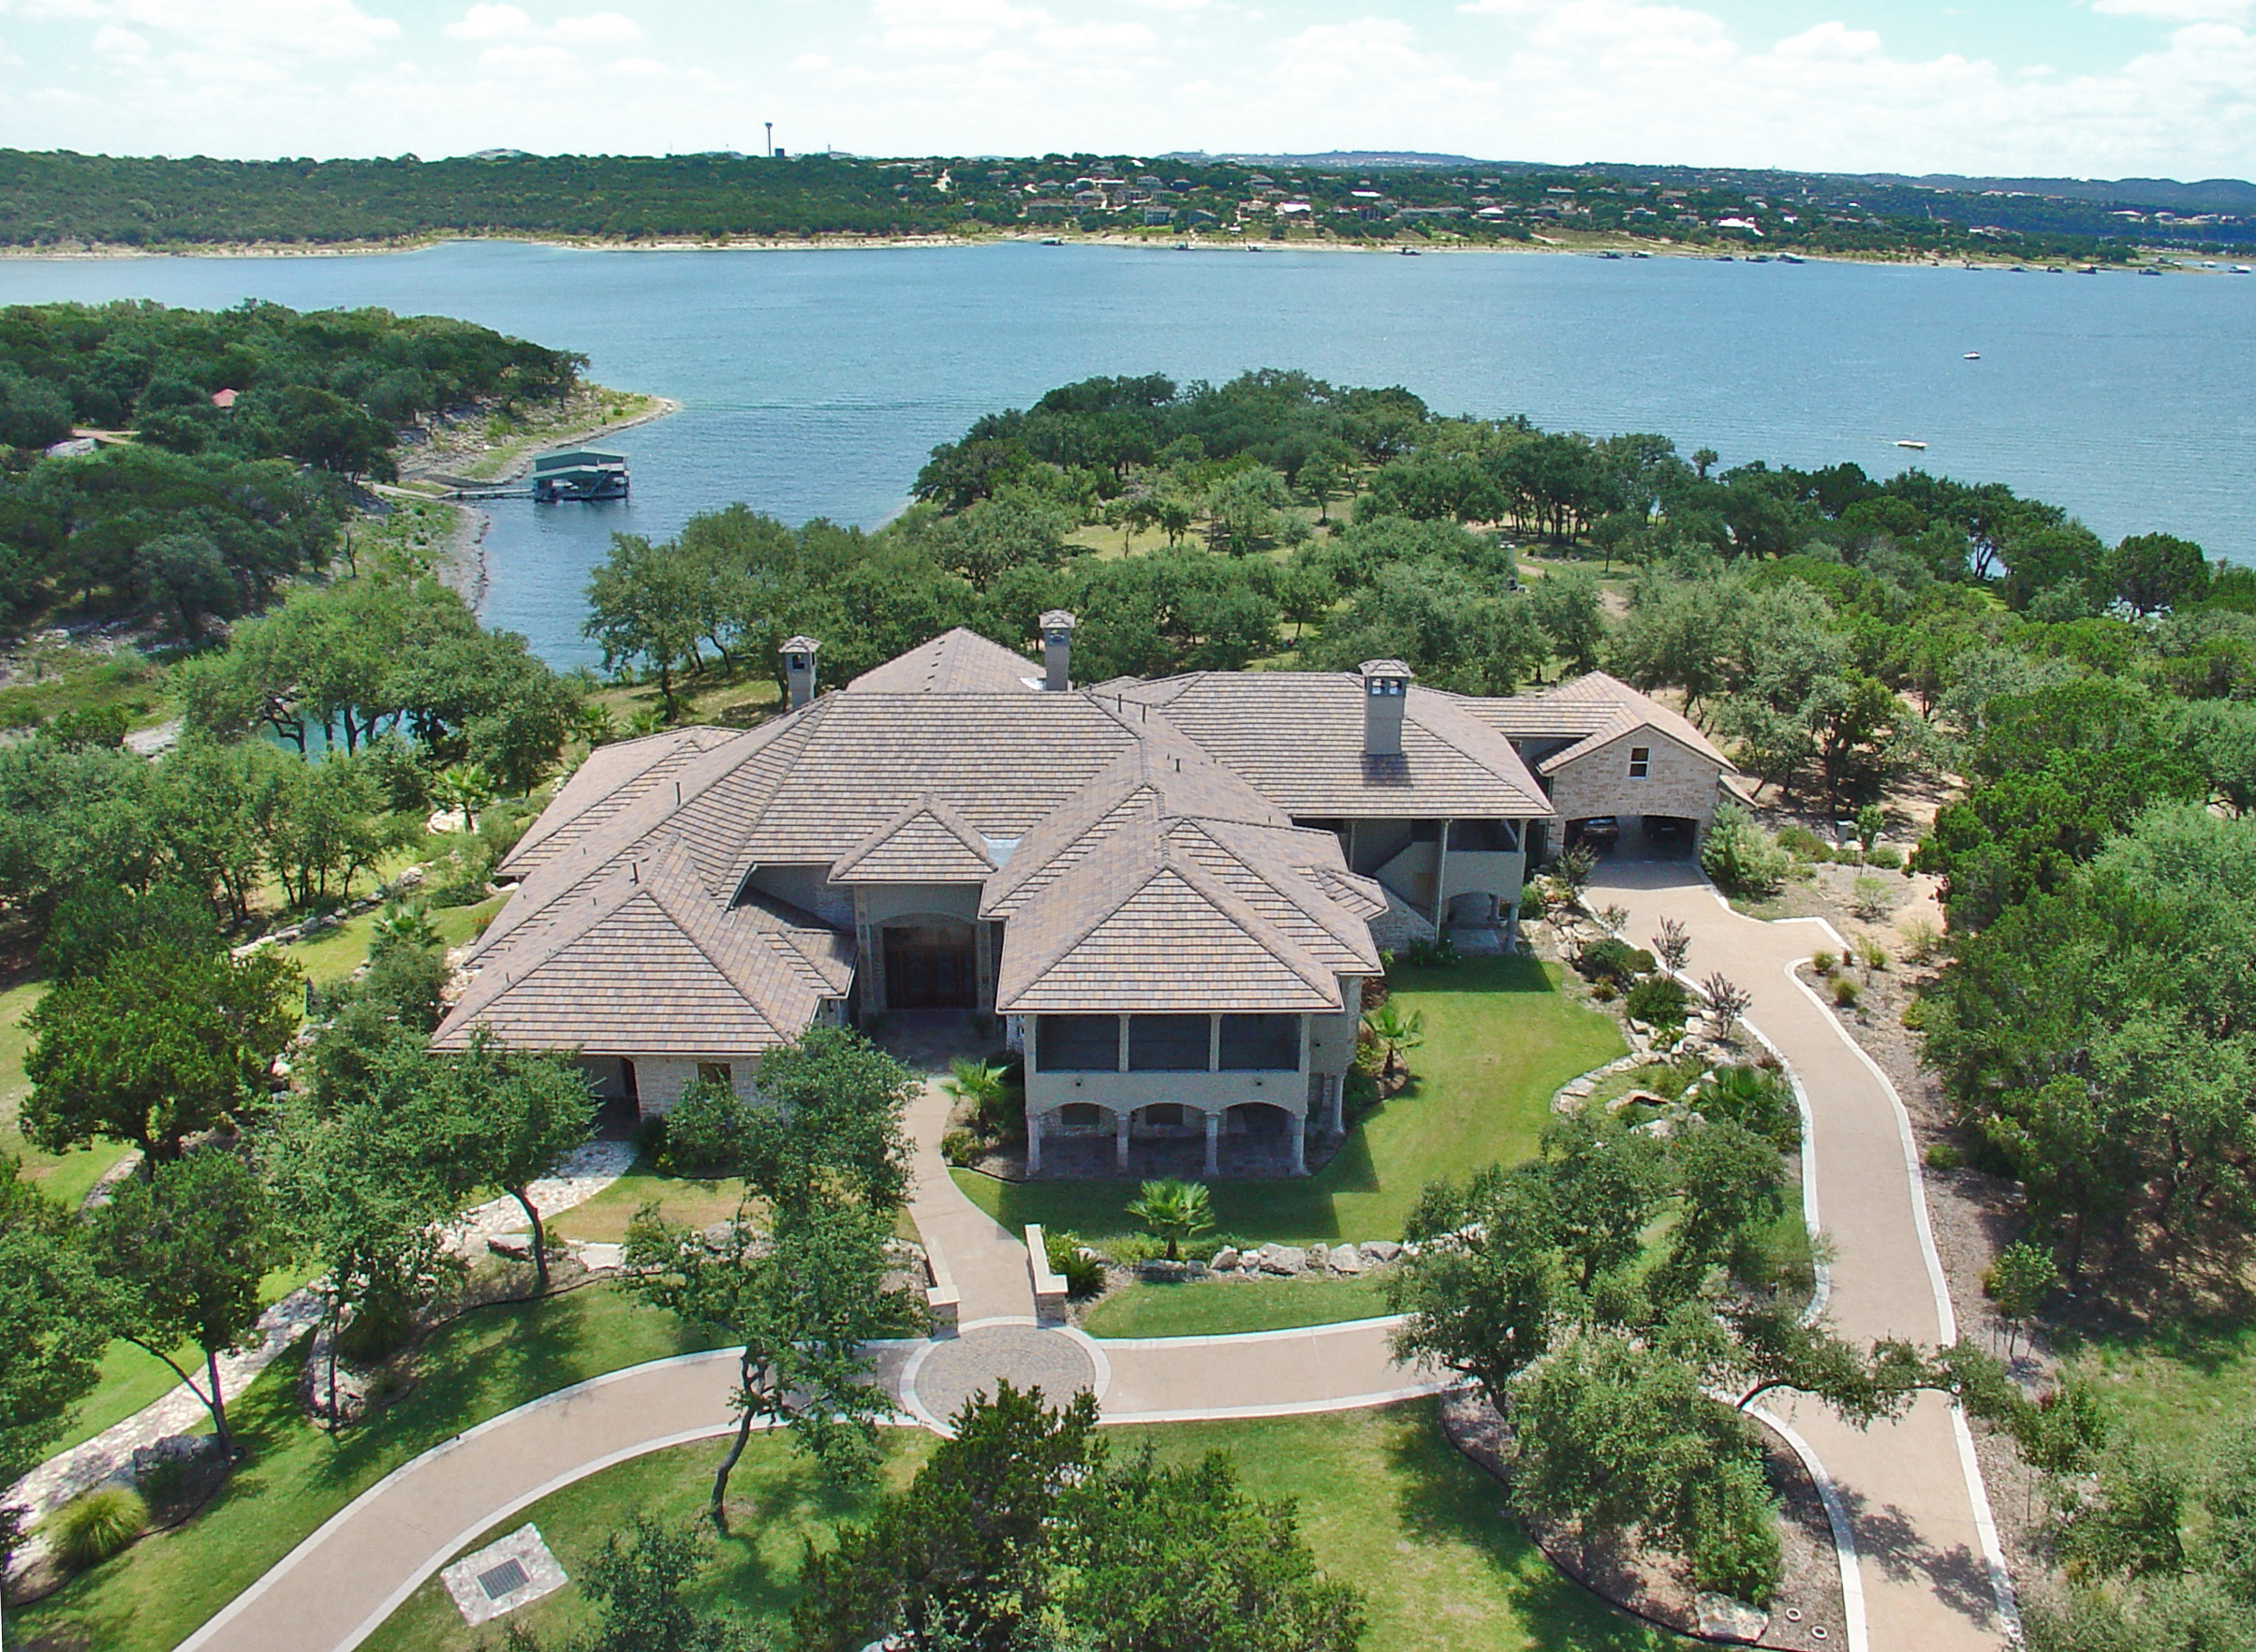 Aerial view of very large, two story mansion compound on green peninsula with lake in background